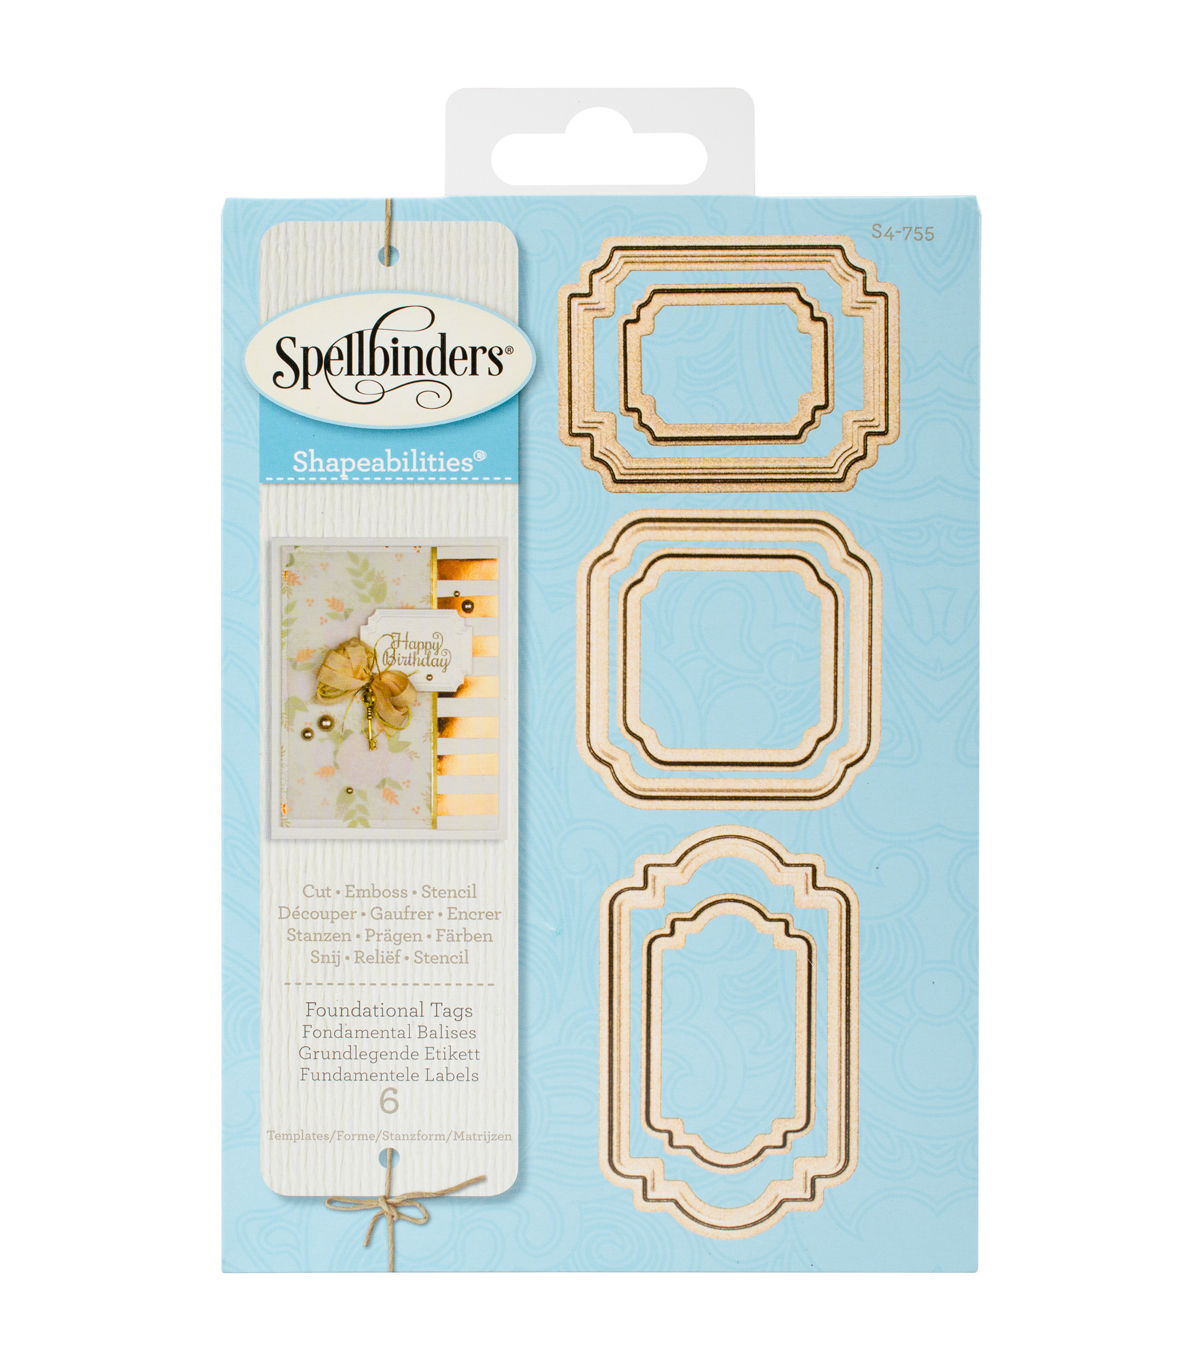 Spellbinders Shapeabilities Etched Die-Foundational Tags